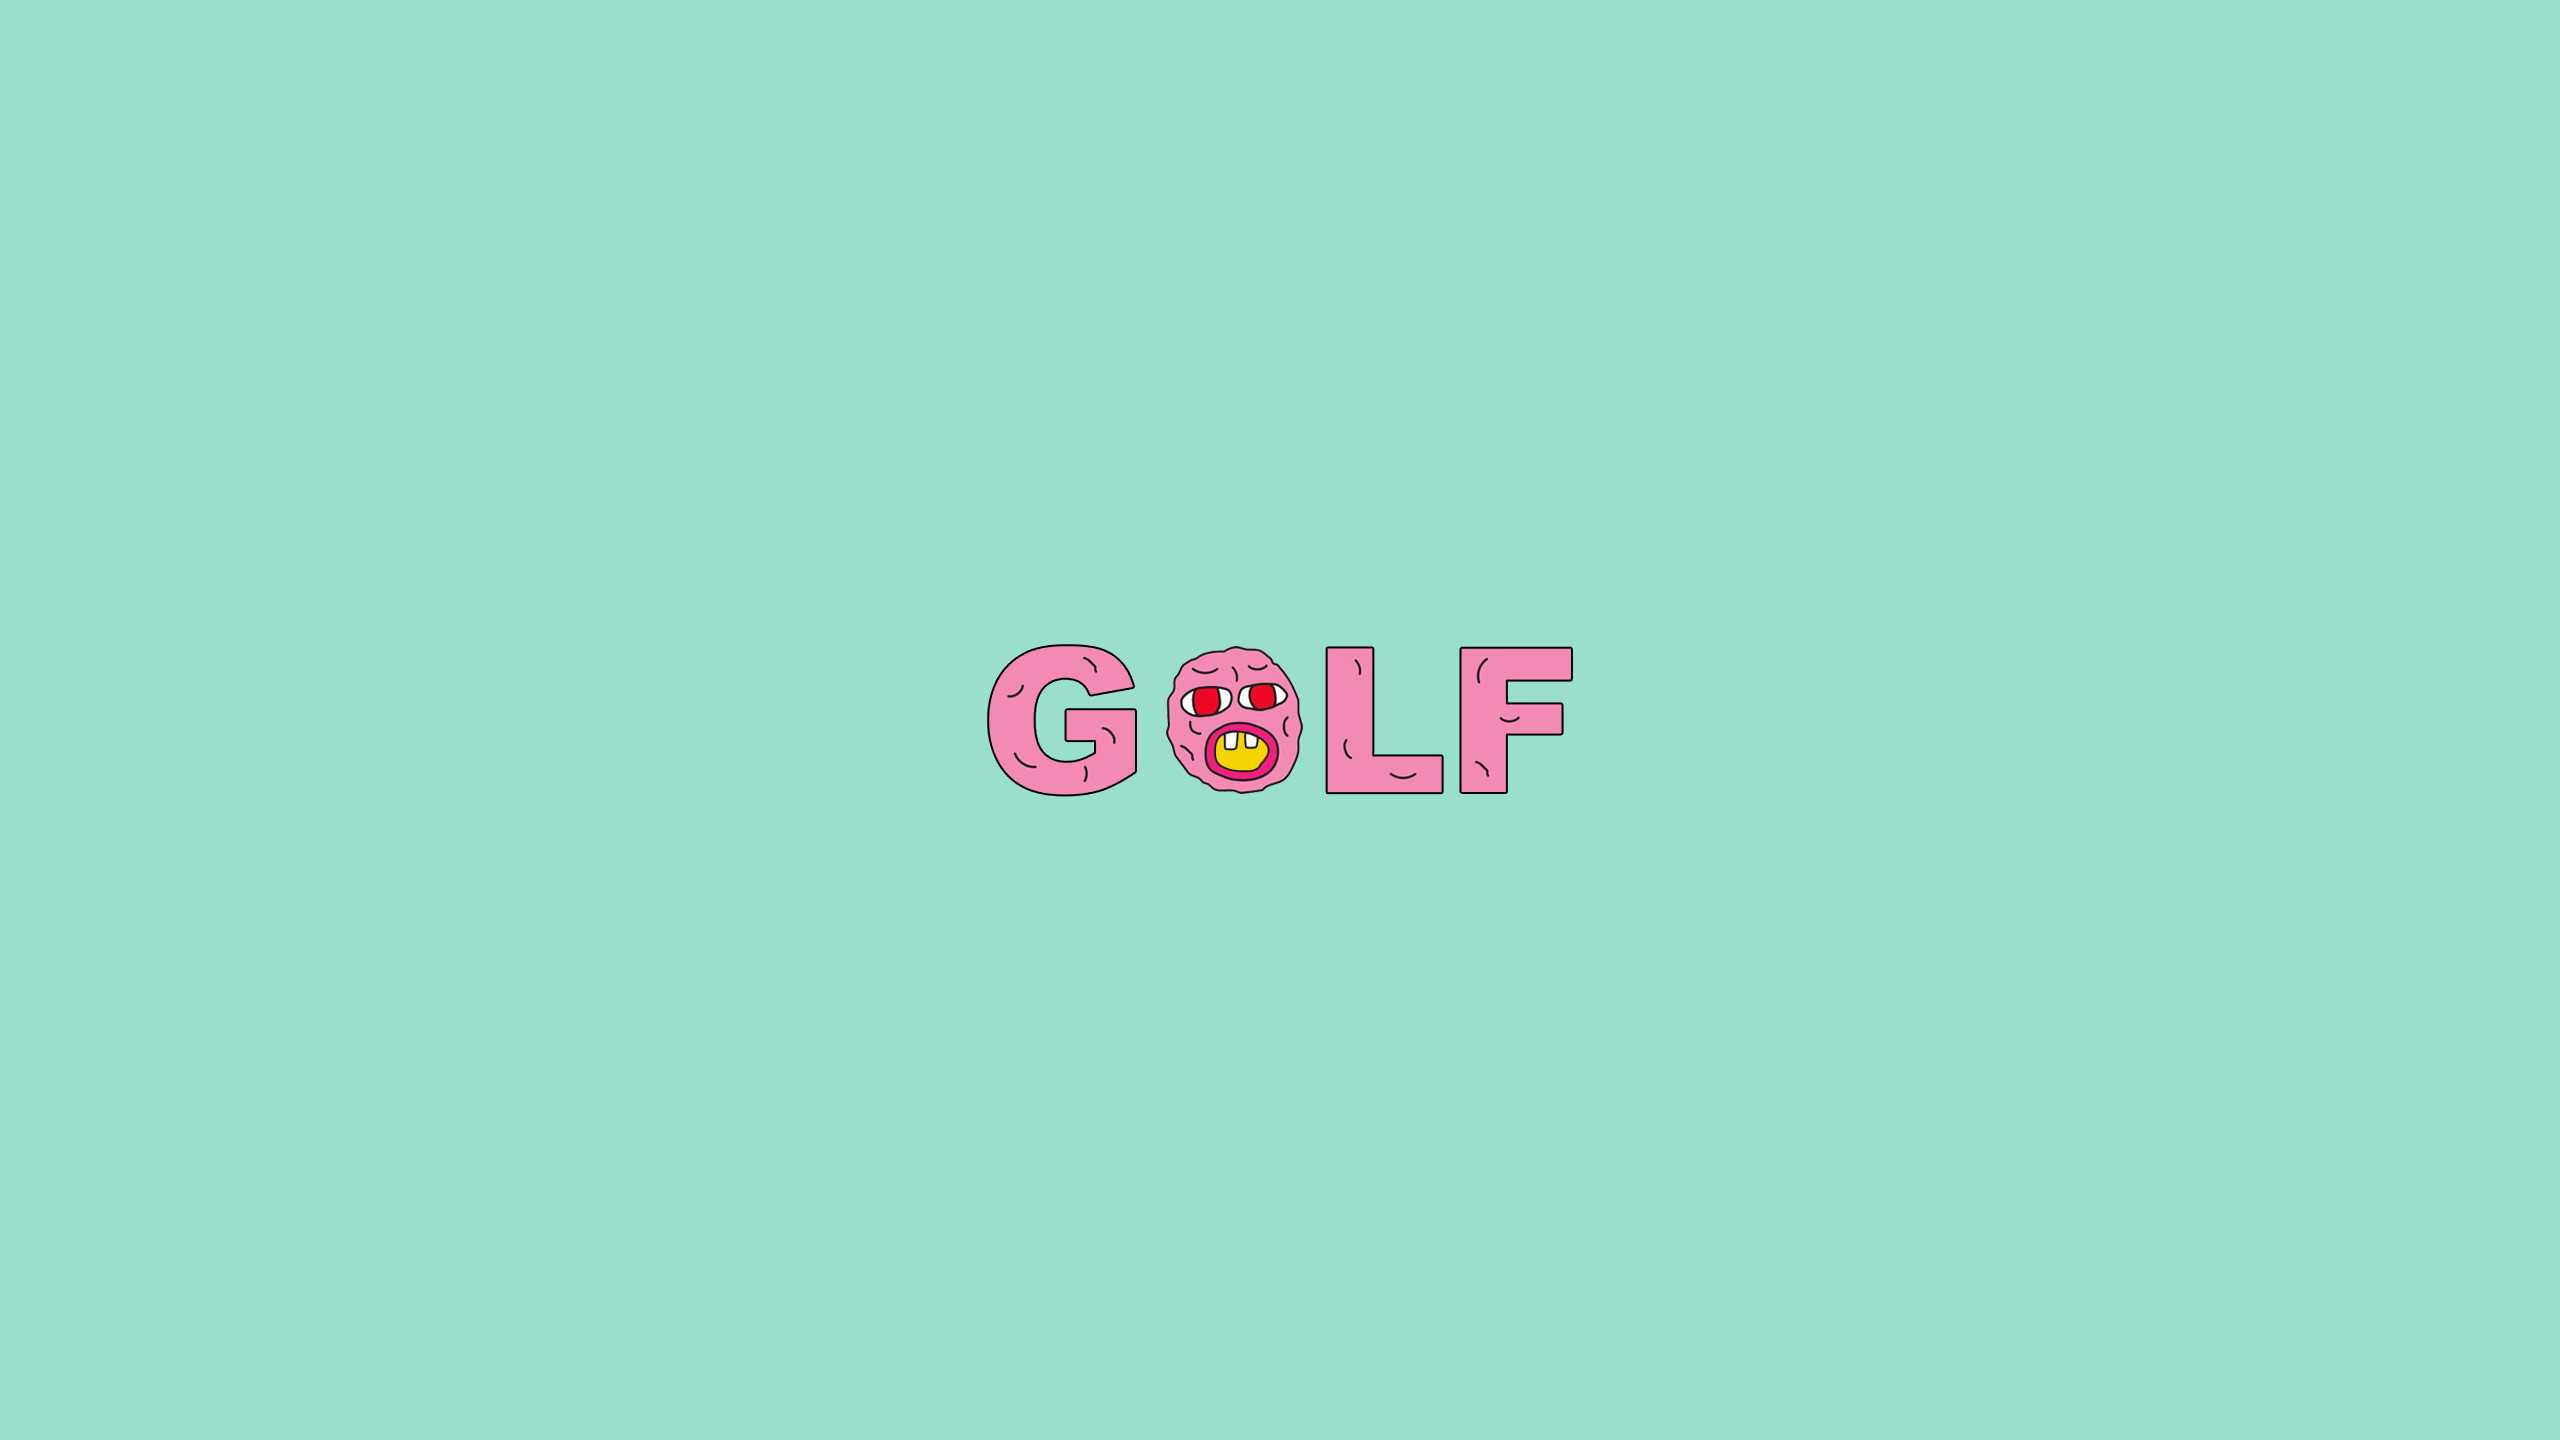 Golf Wang Wallpaper (79+ images) Golf Wang Wallpapers